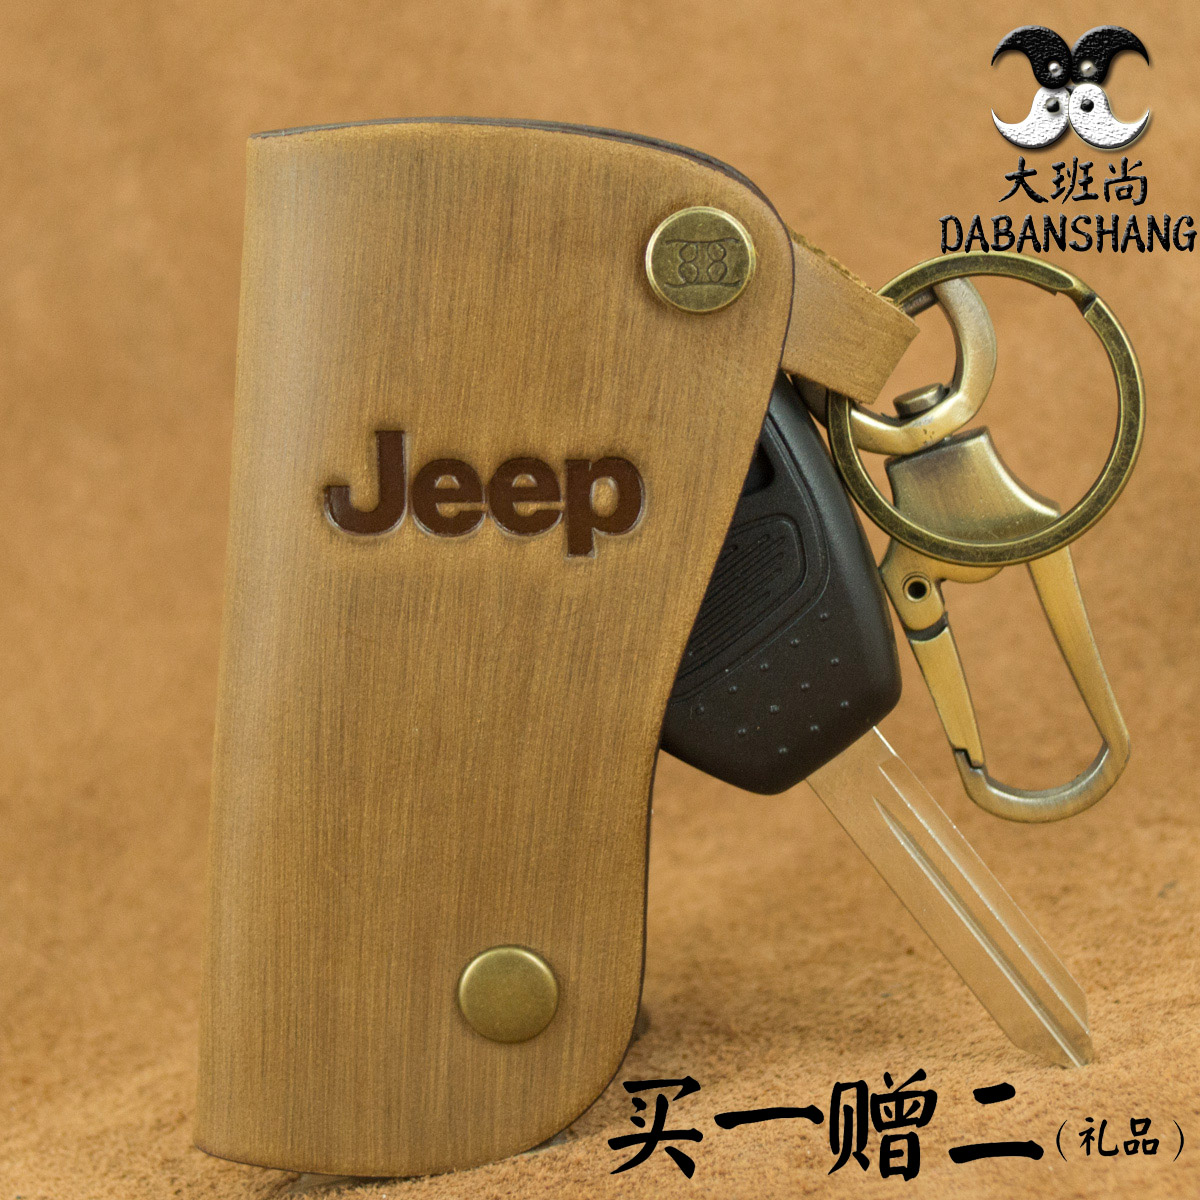 The new straight leather car key protective sheath dedicated jeep jeep wrangler guide freely off the light